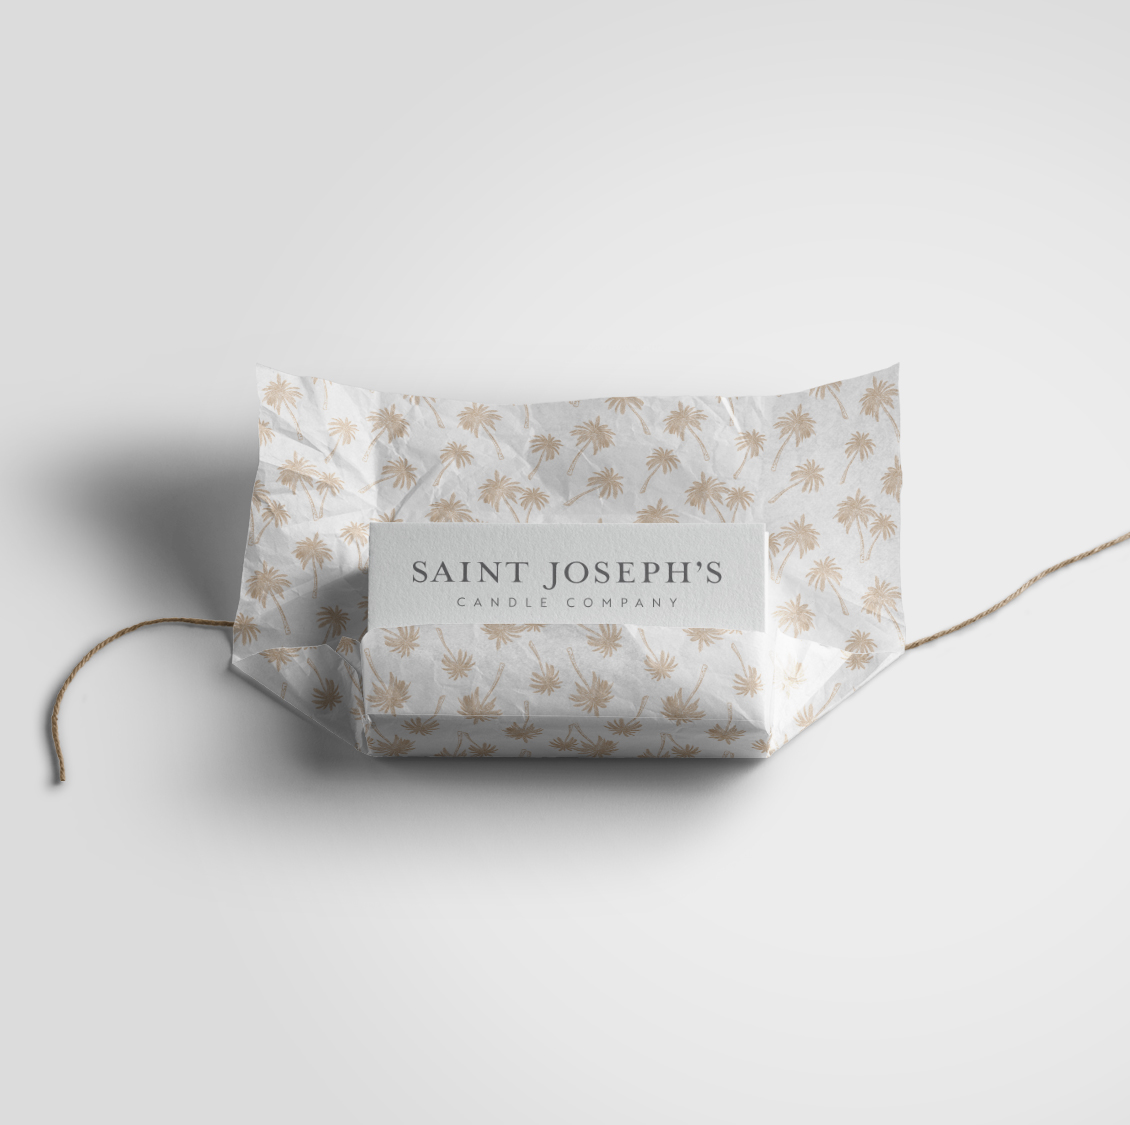 Brand and Packaging Design for Saint Joseph's Candle Company / World Brand Design Society